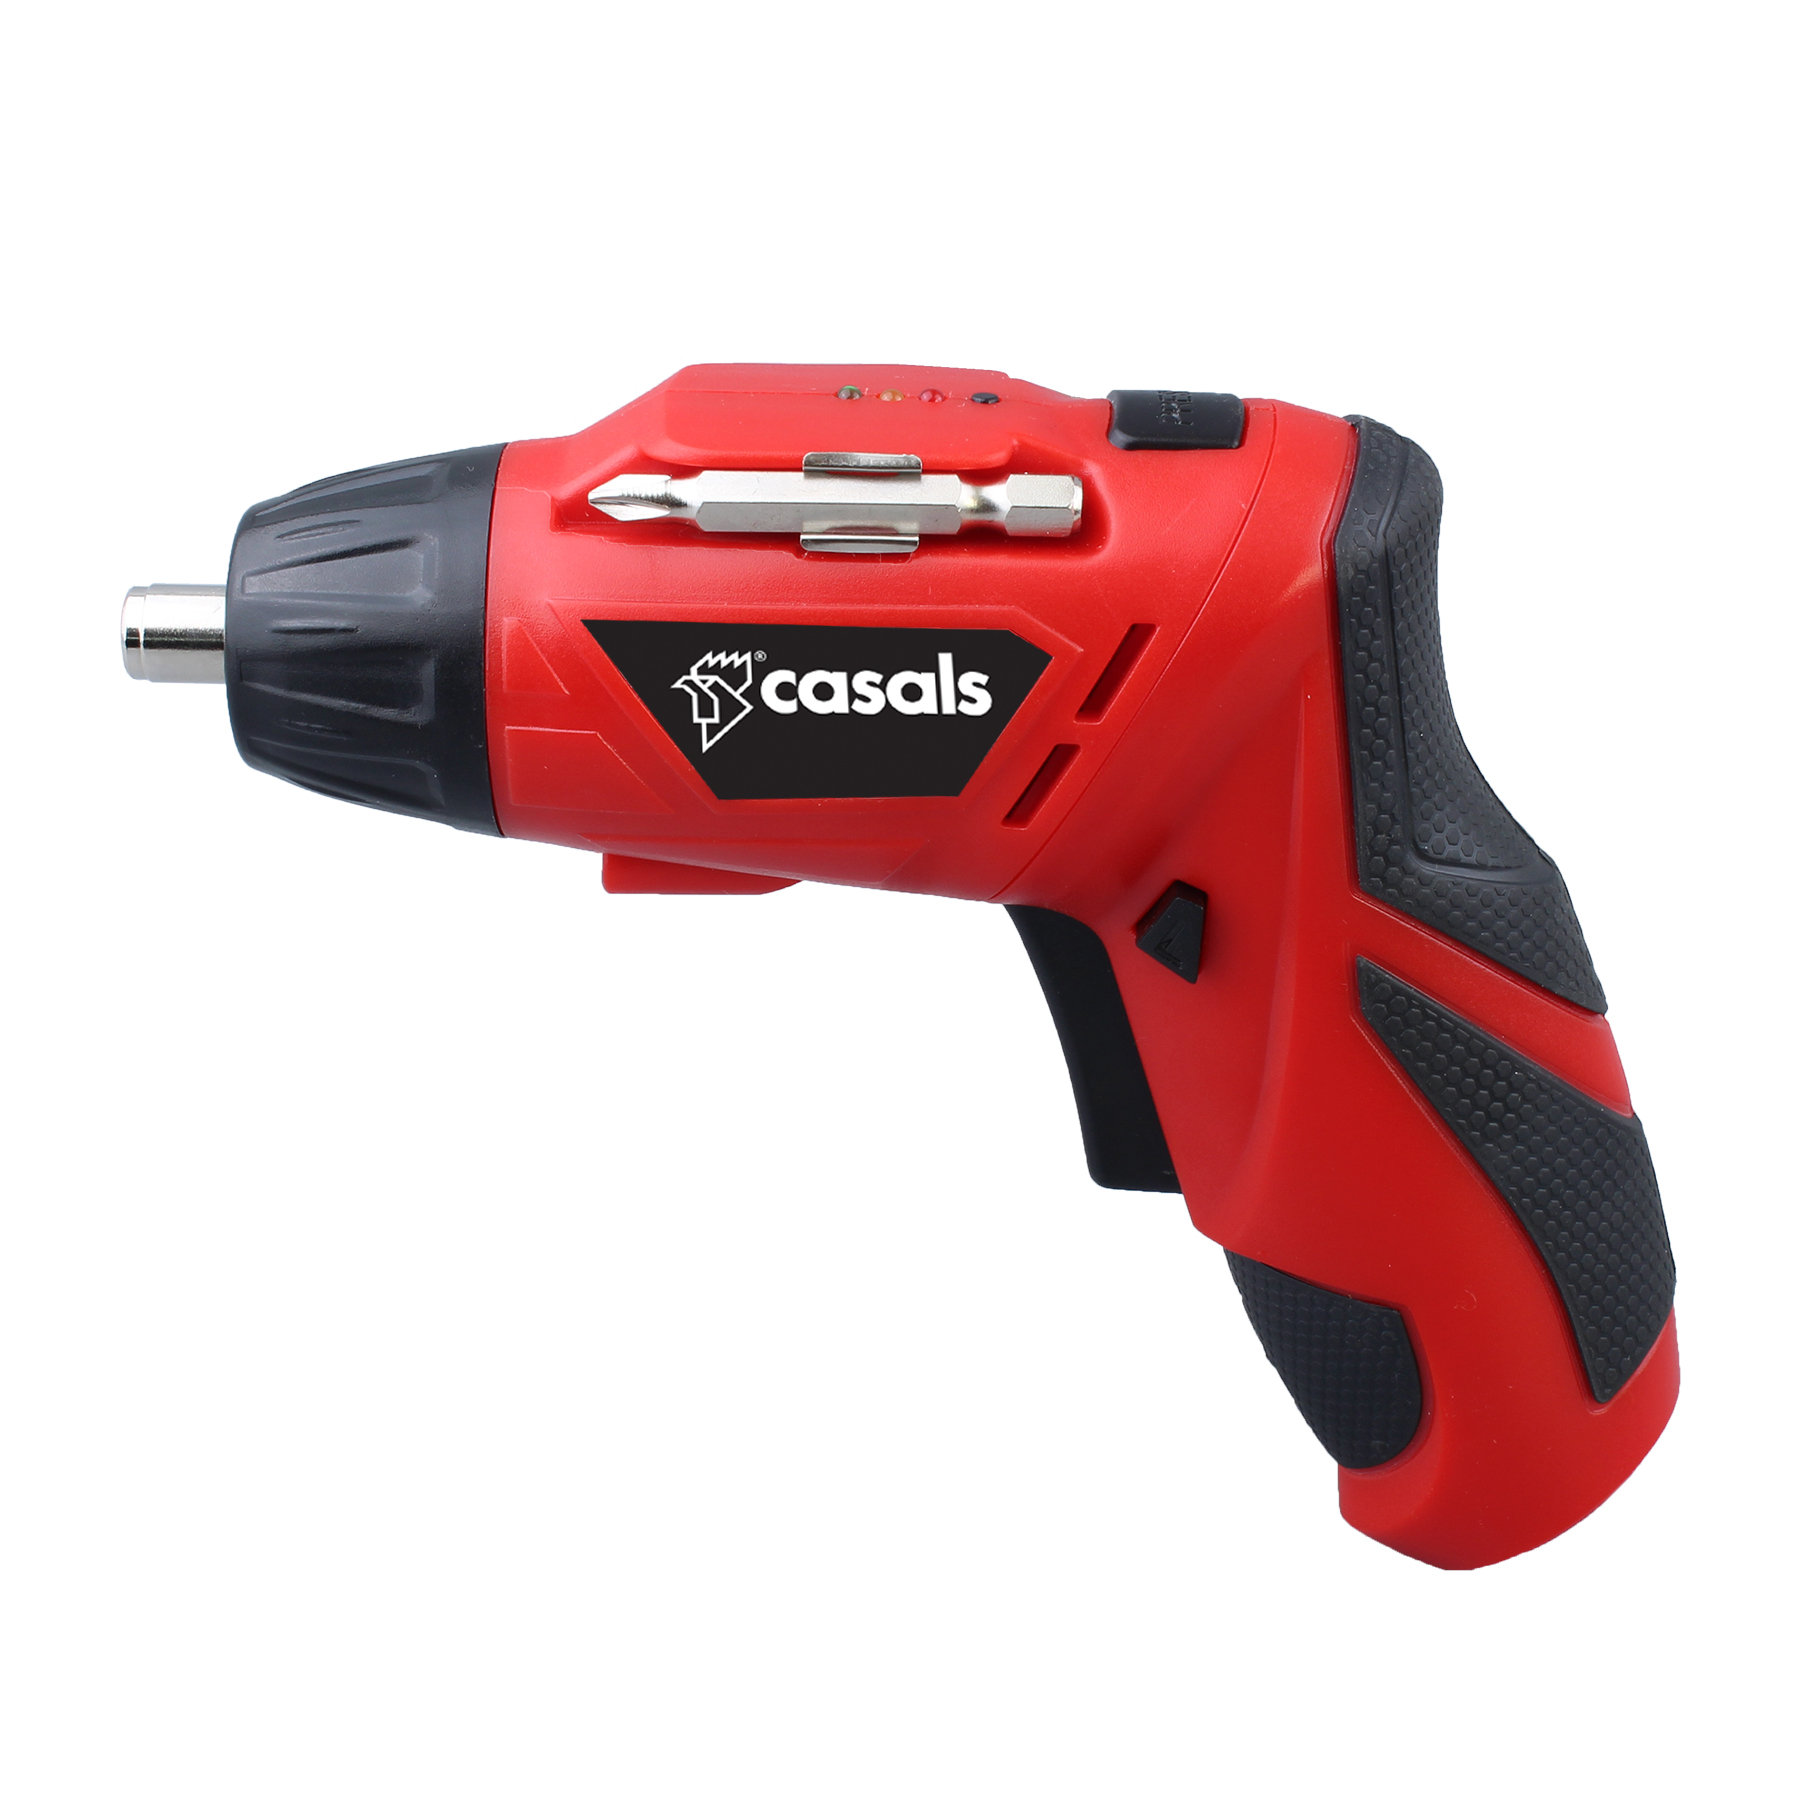 Casals Screwdriver Cordless Rechargeable 12 Piece Set Plastic Red 6.35mm 3.6V